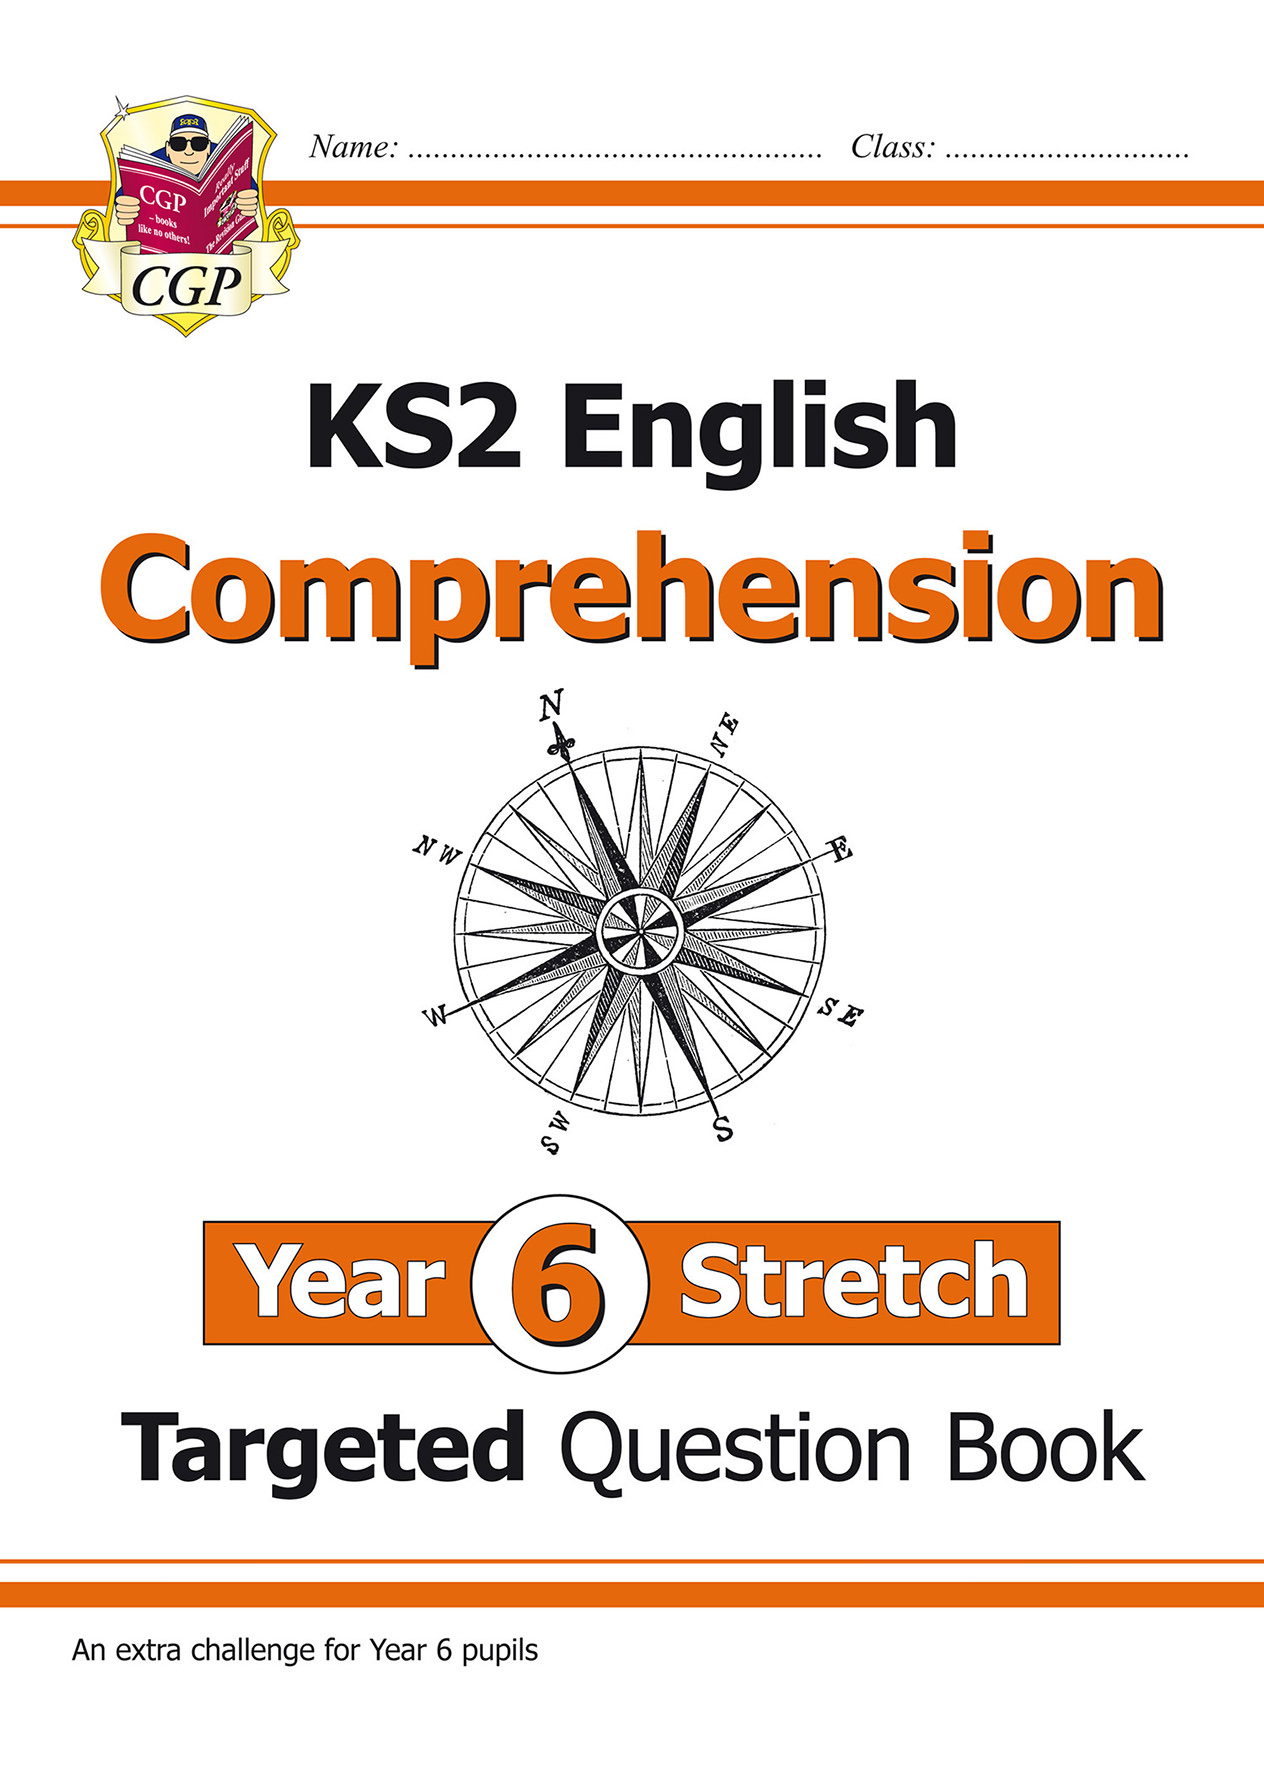 E6HCW21 - New KS2 English Targeted Question Book: Challenging Comprehension - Year 6 Stretch (with A